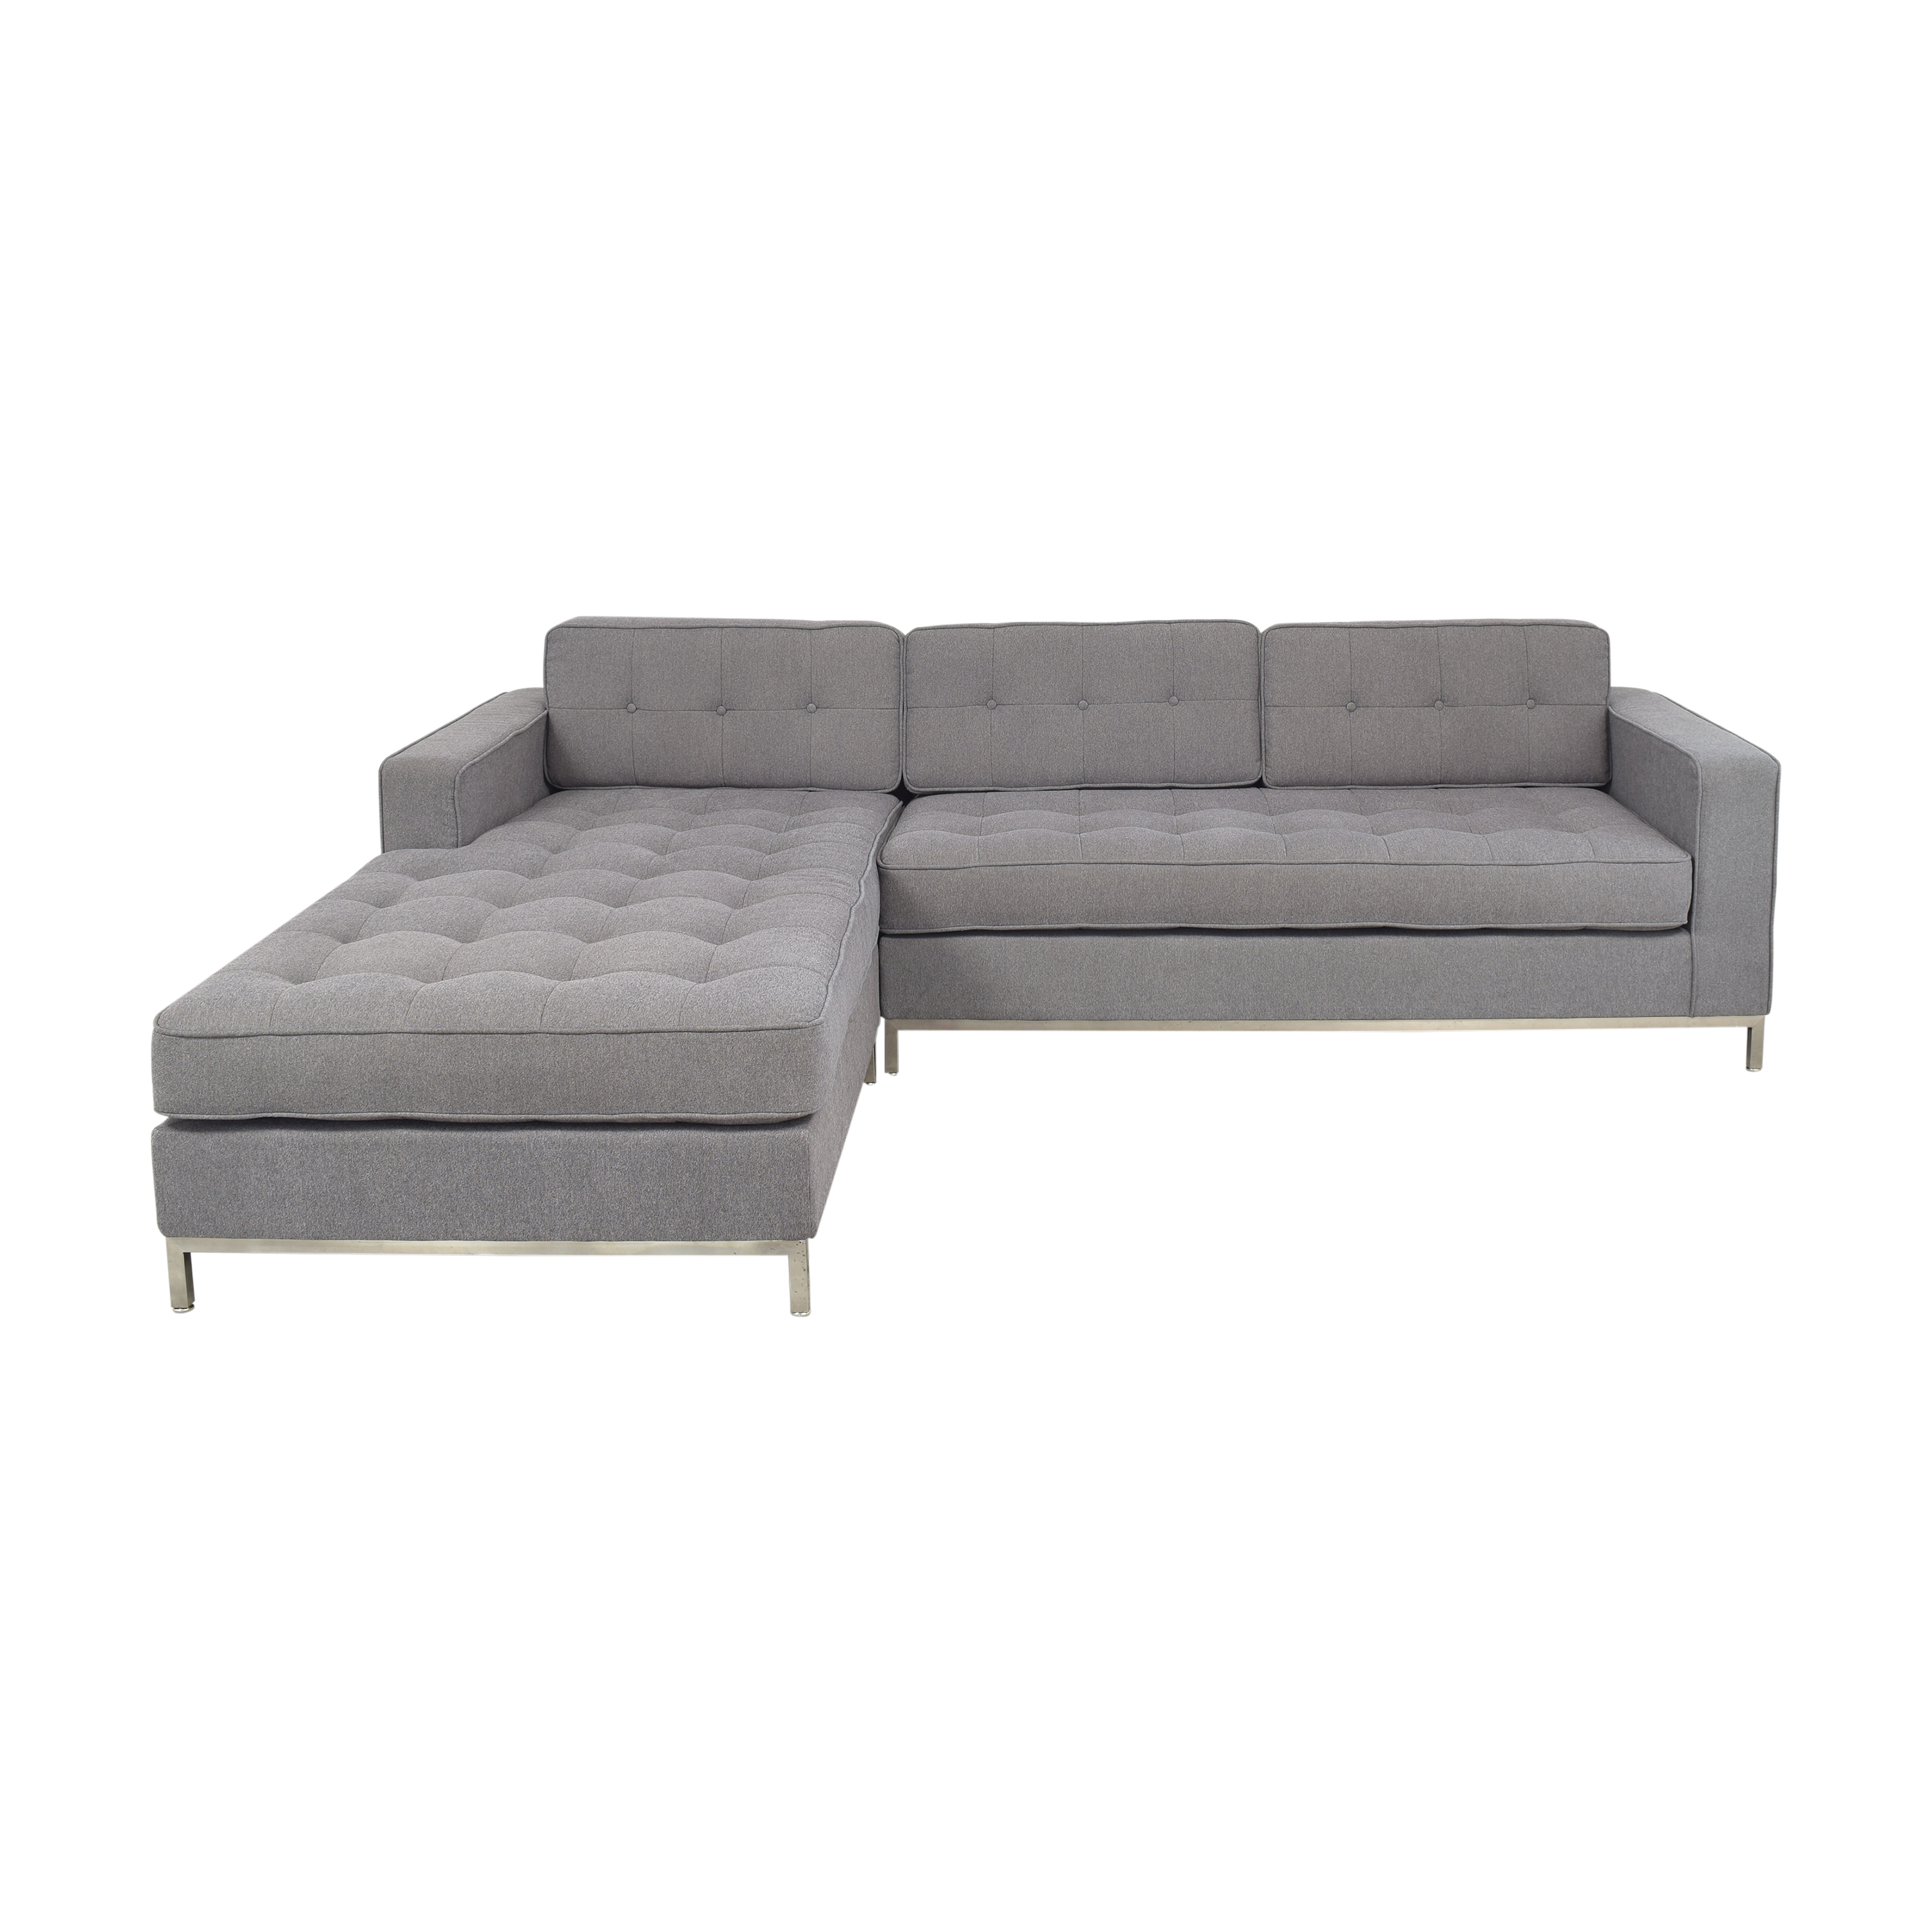 Gus Modern Gus Modern Chaise Sectional used